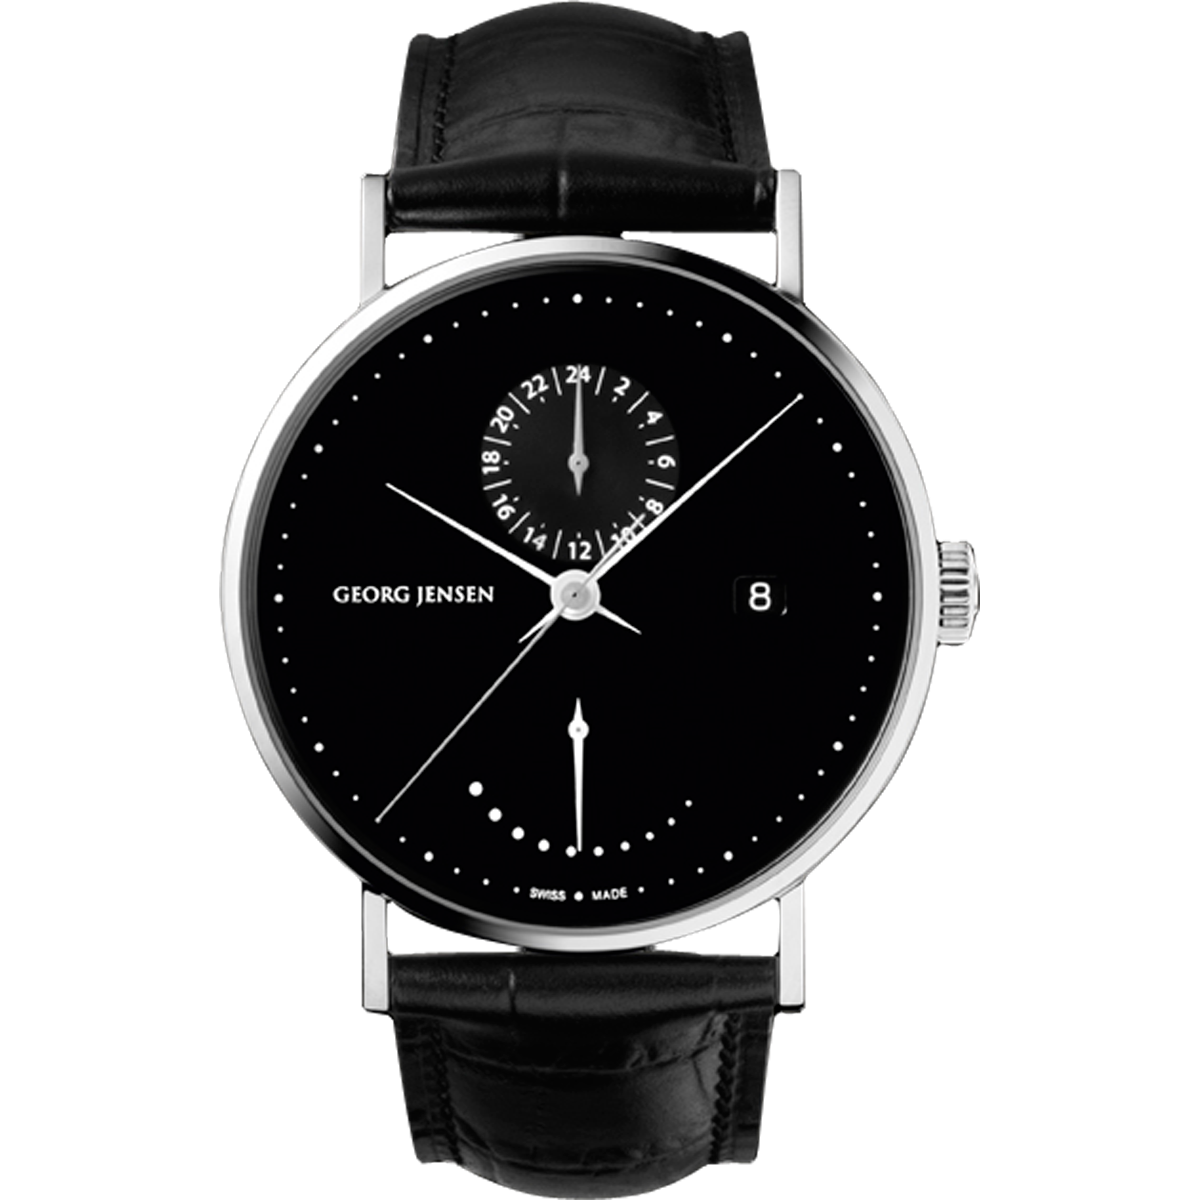 Something Has Gone Wrong Luxury Watches For Men Watch Design Black Watch